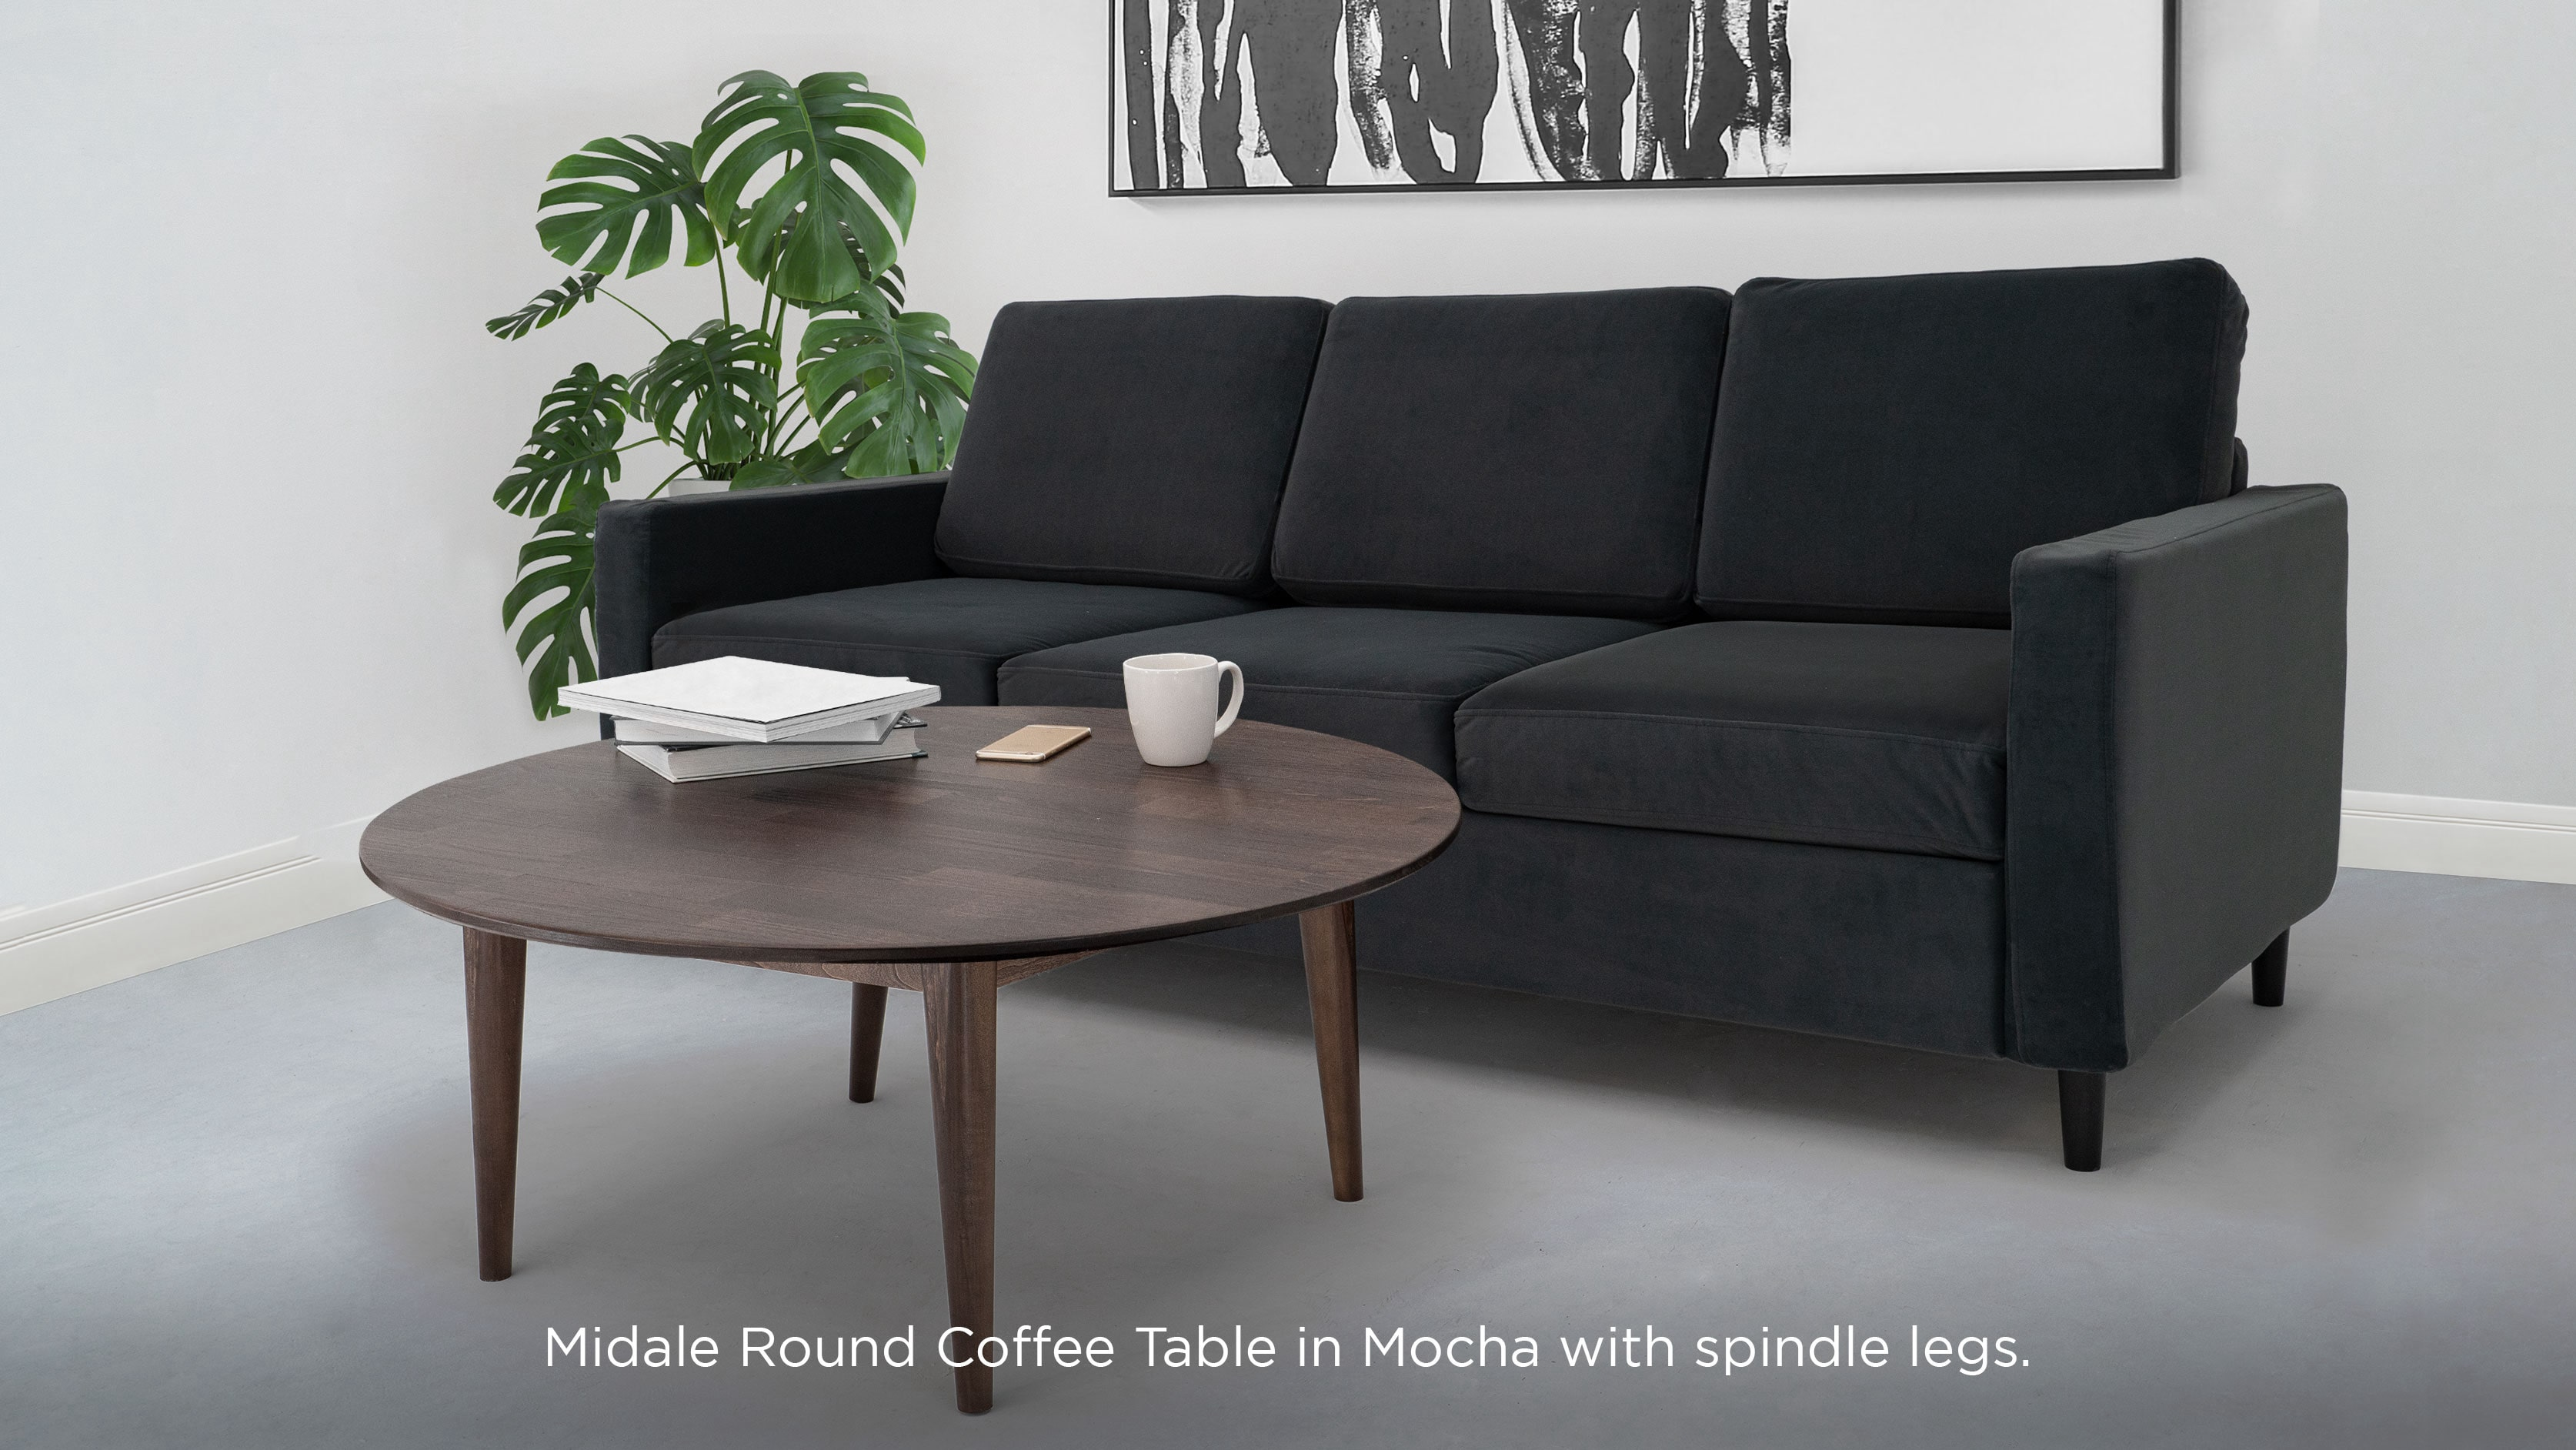 Midale Round Coffee Table